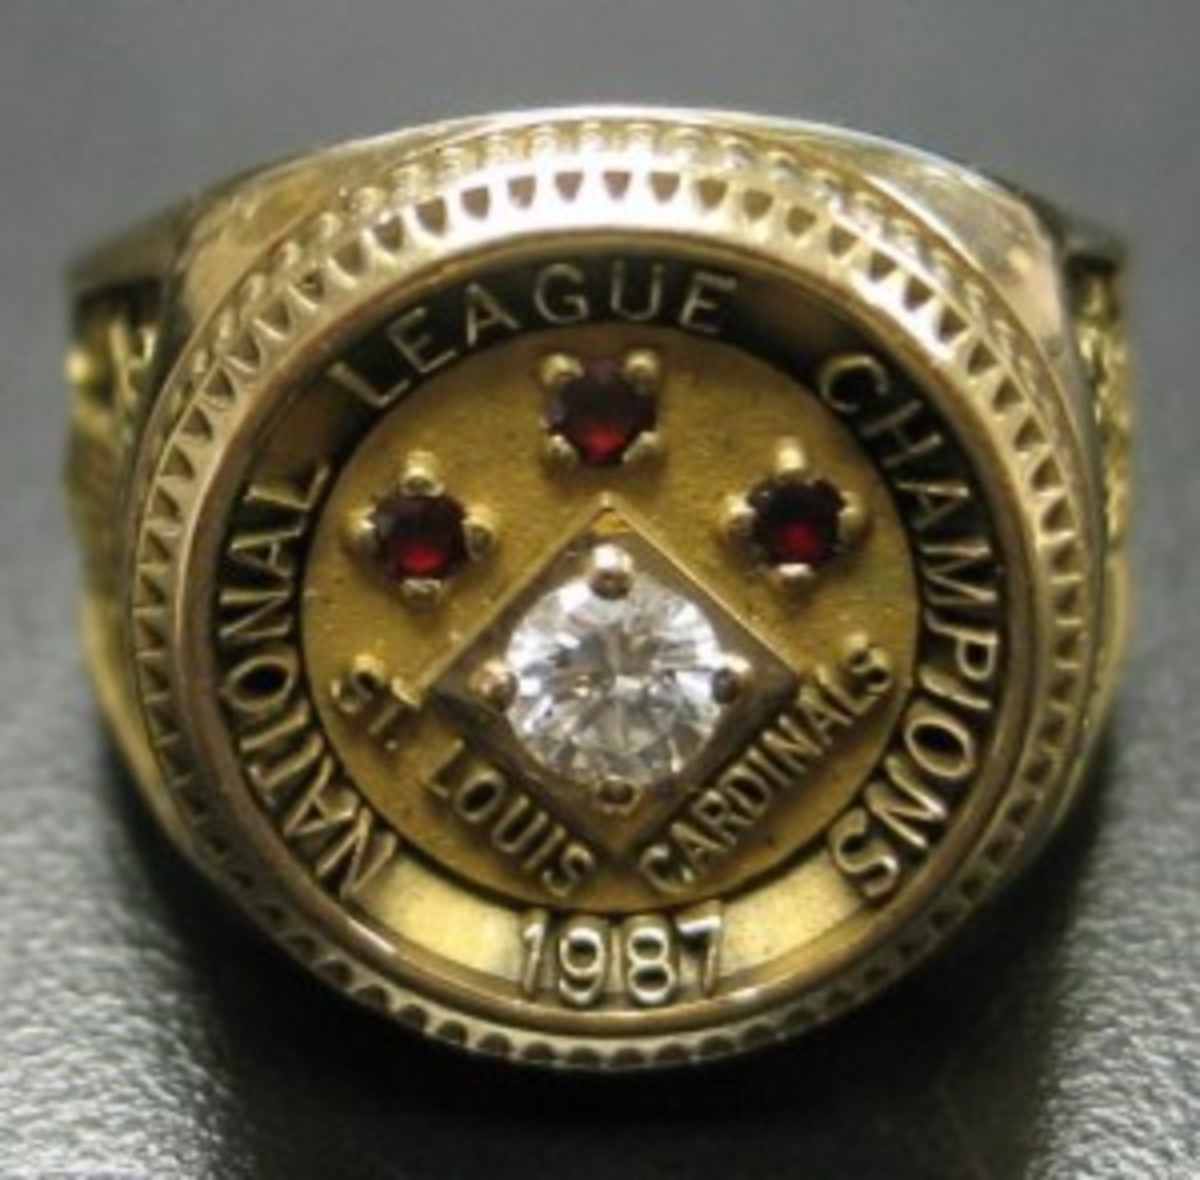 1987 St. Louis Cardinals National League championship ring from the estate of Bart Giamatti.